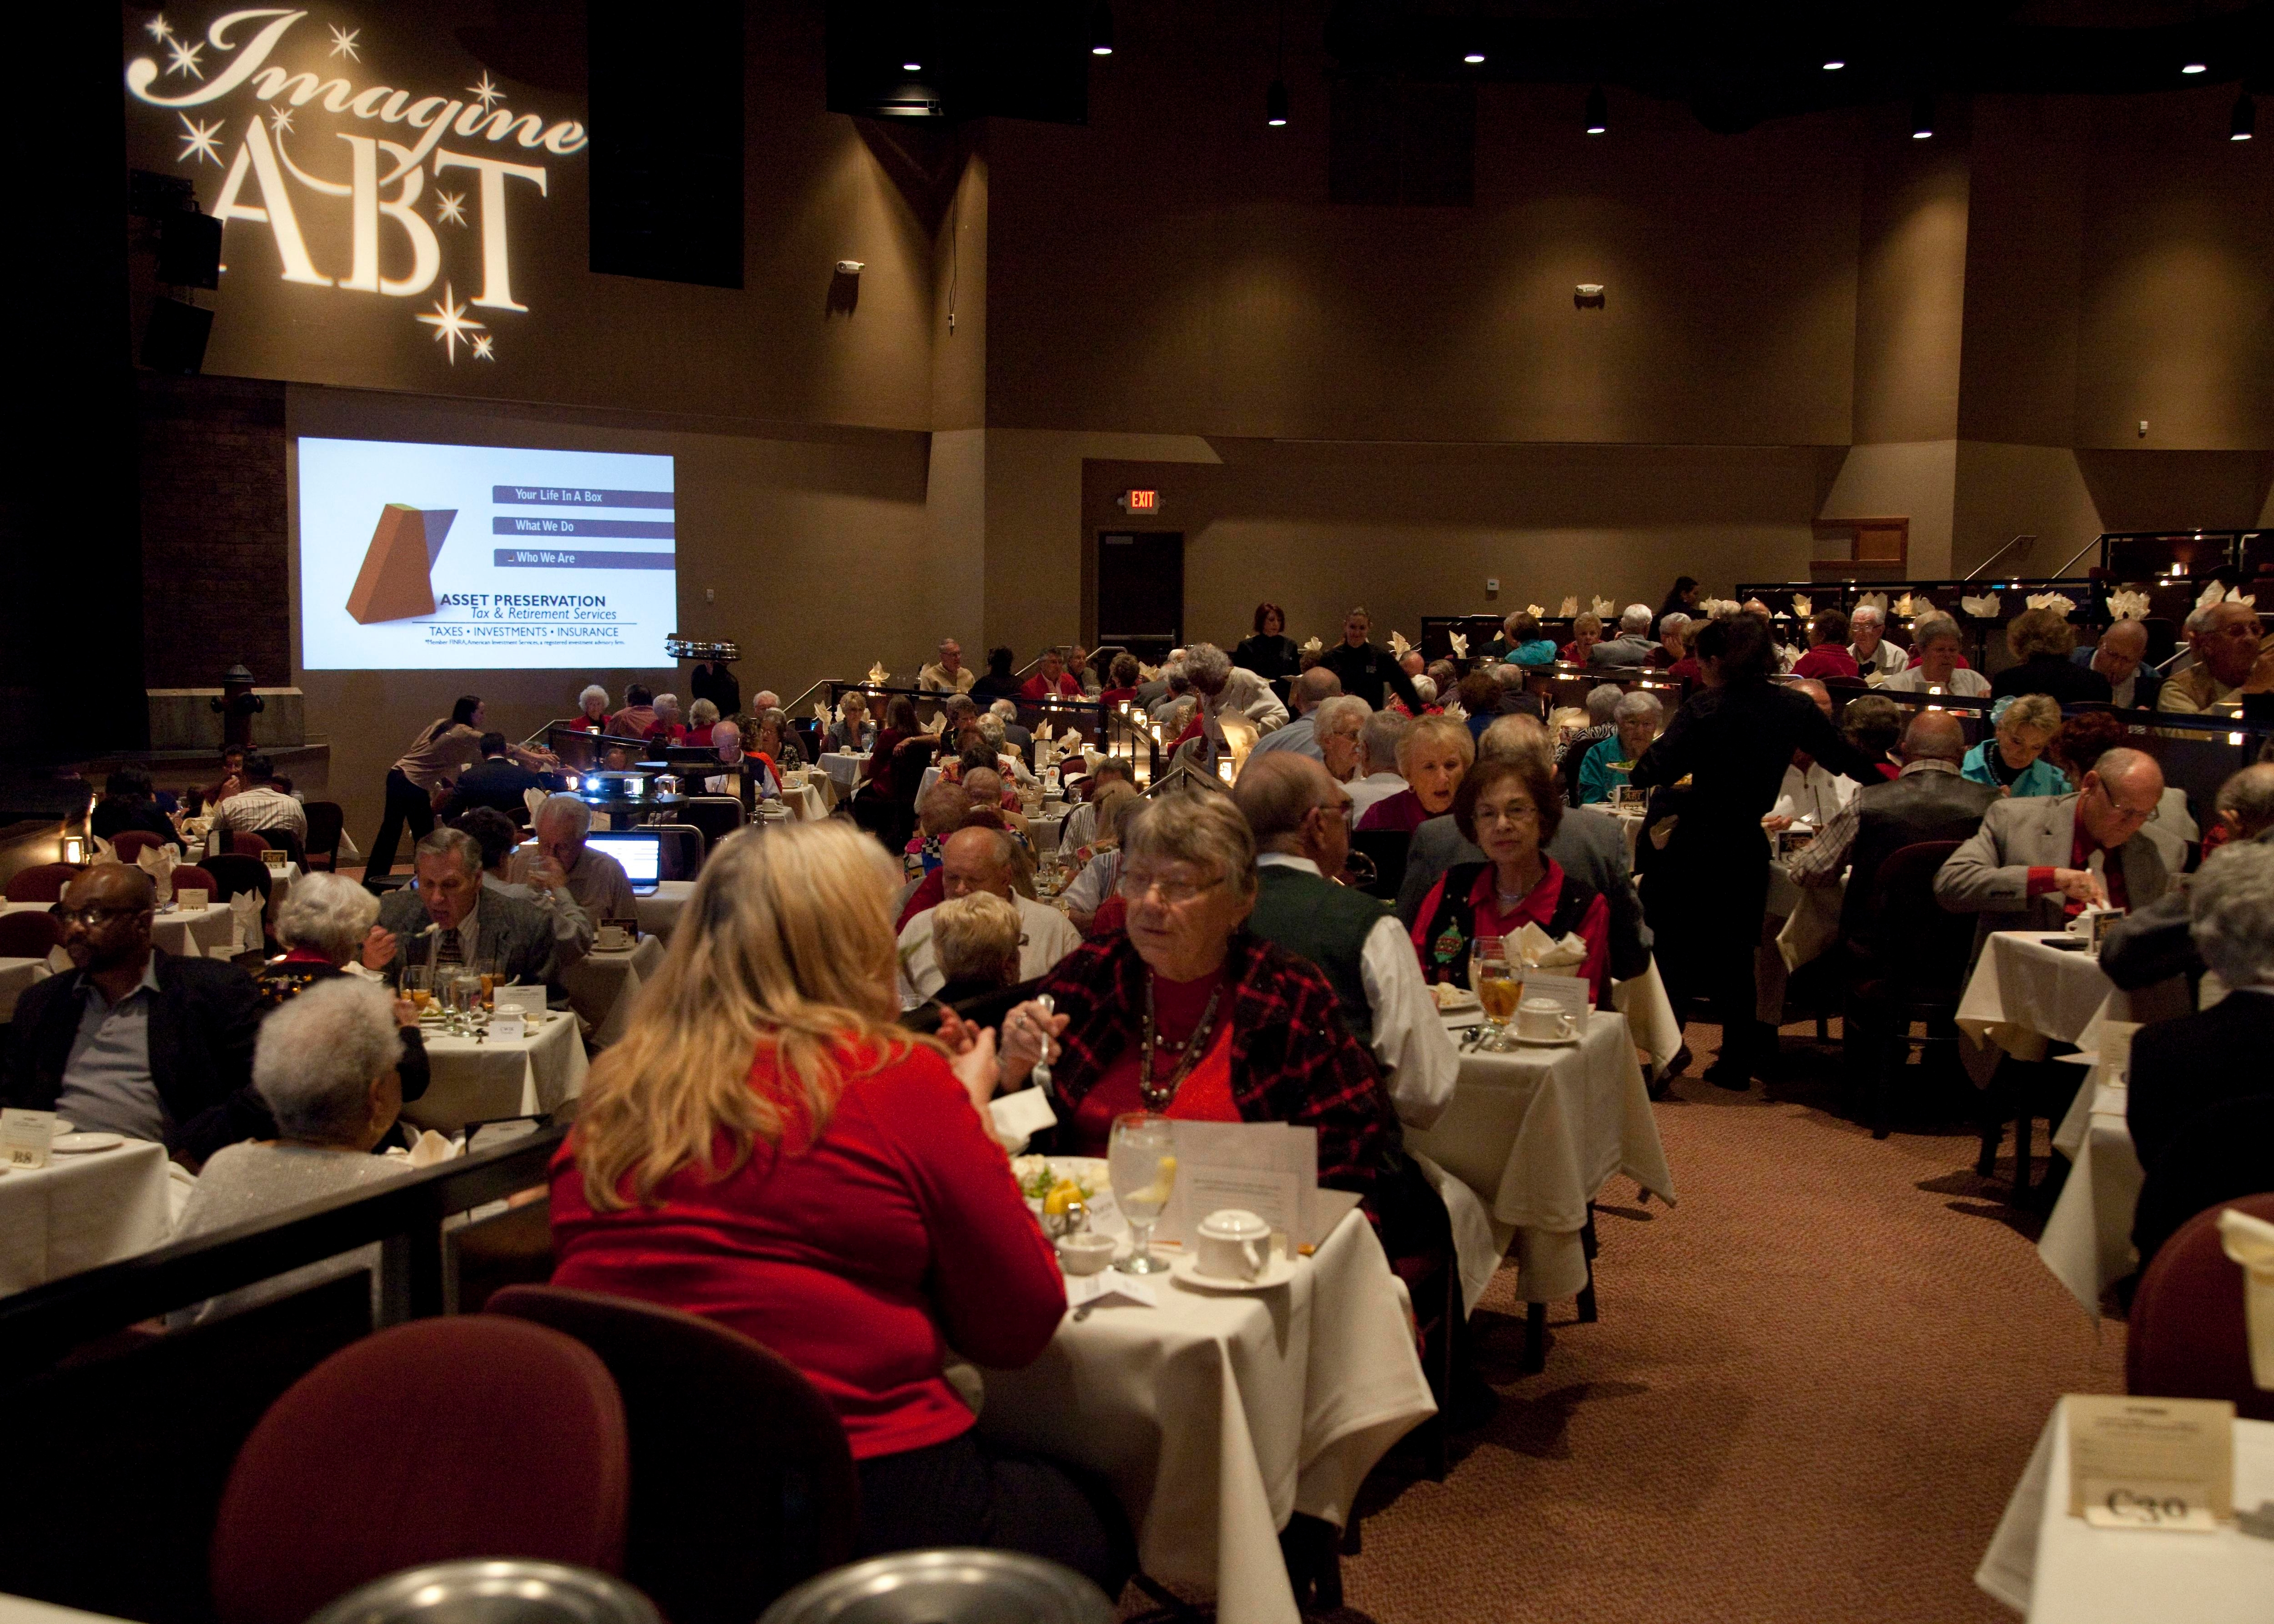 Asset Preservation Tax & Retirement Services - Surprise, AZ - Saying Thanks to our most special Clients!